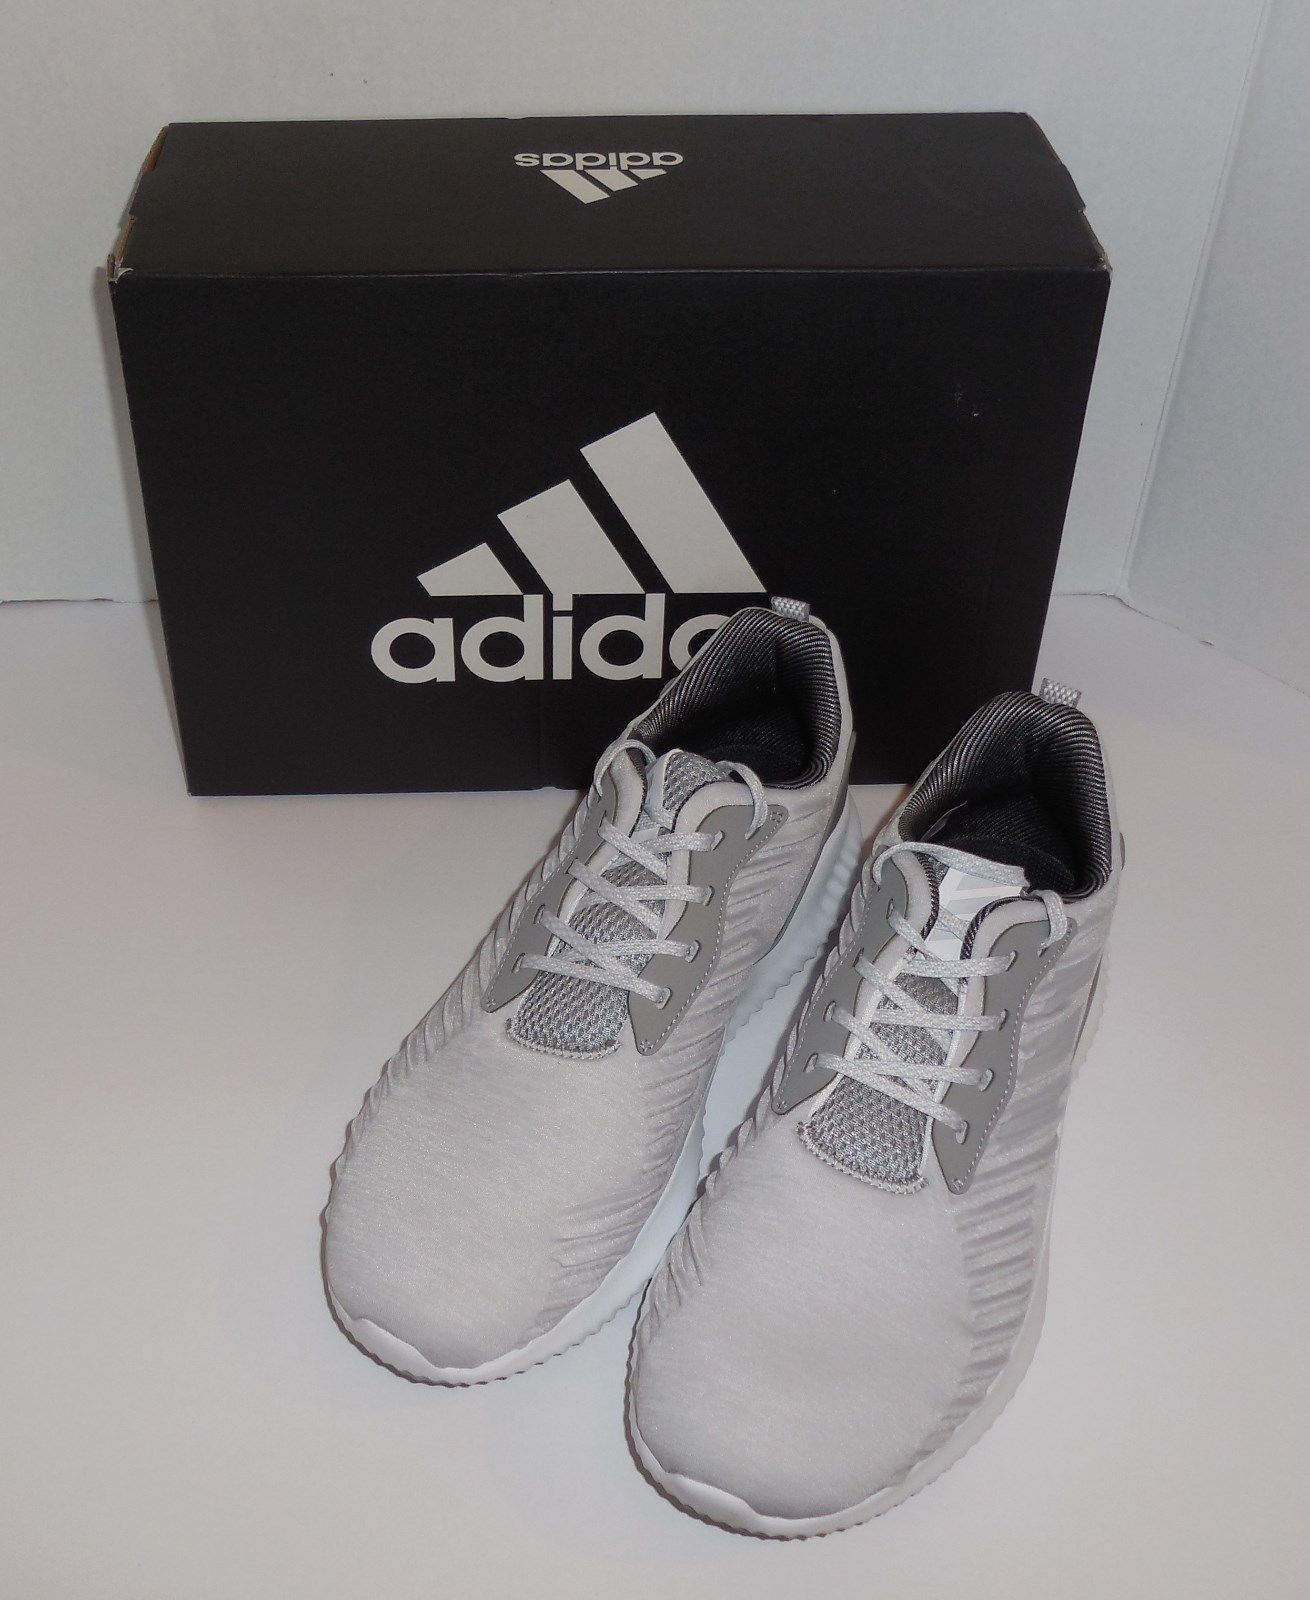 aaa9636b7714a Adidas Alphabounce RC Mens 9.5 Sneakers Running Shoes Light Grey B42865 New